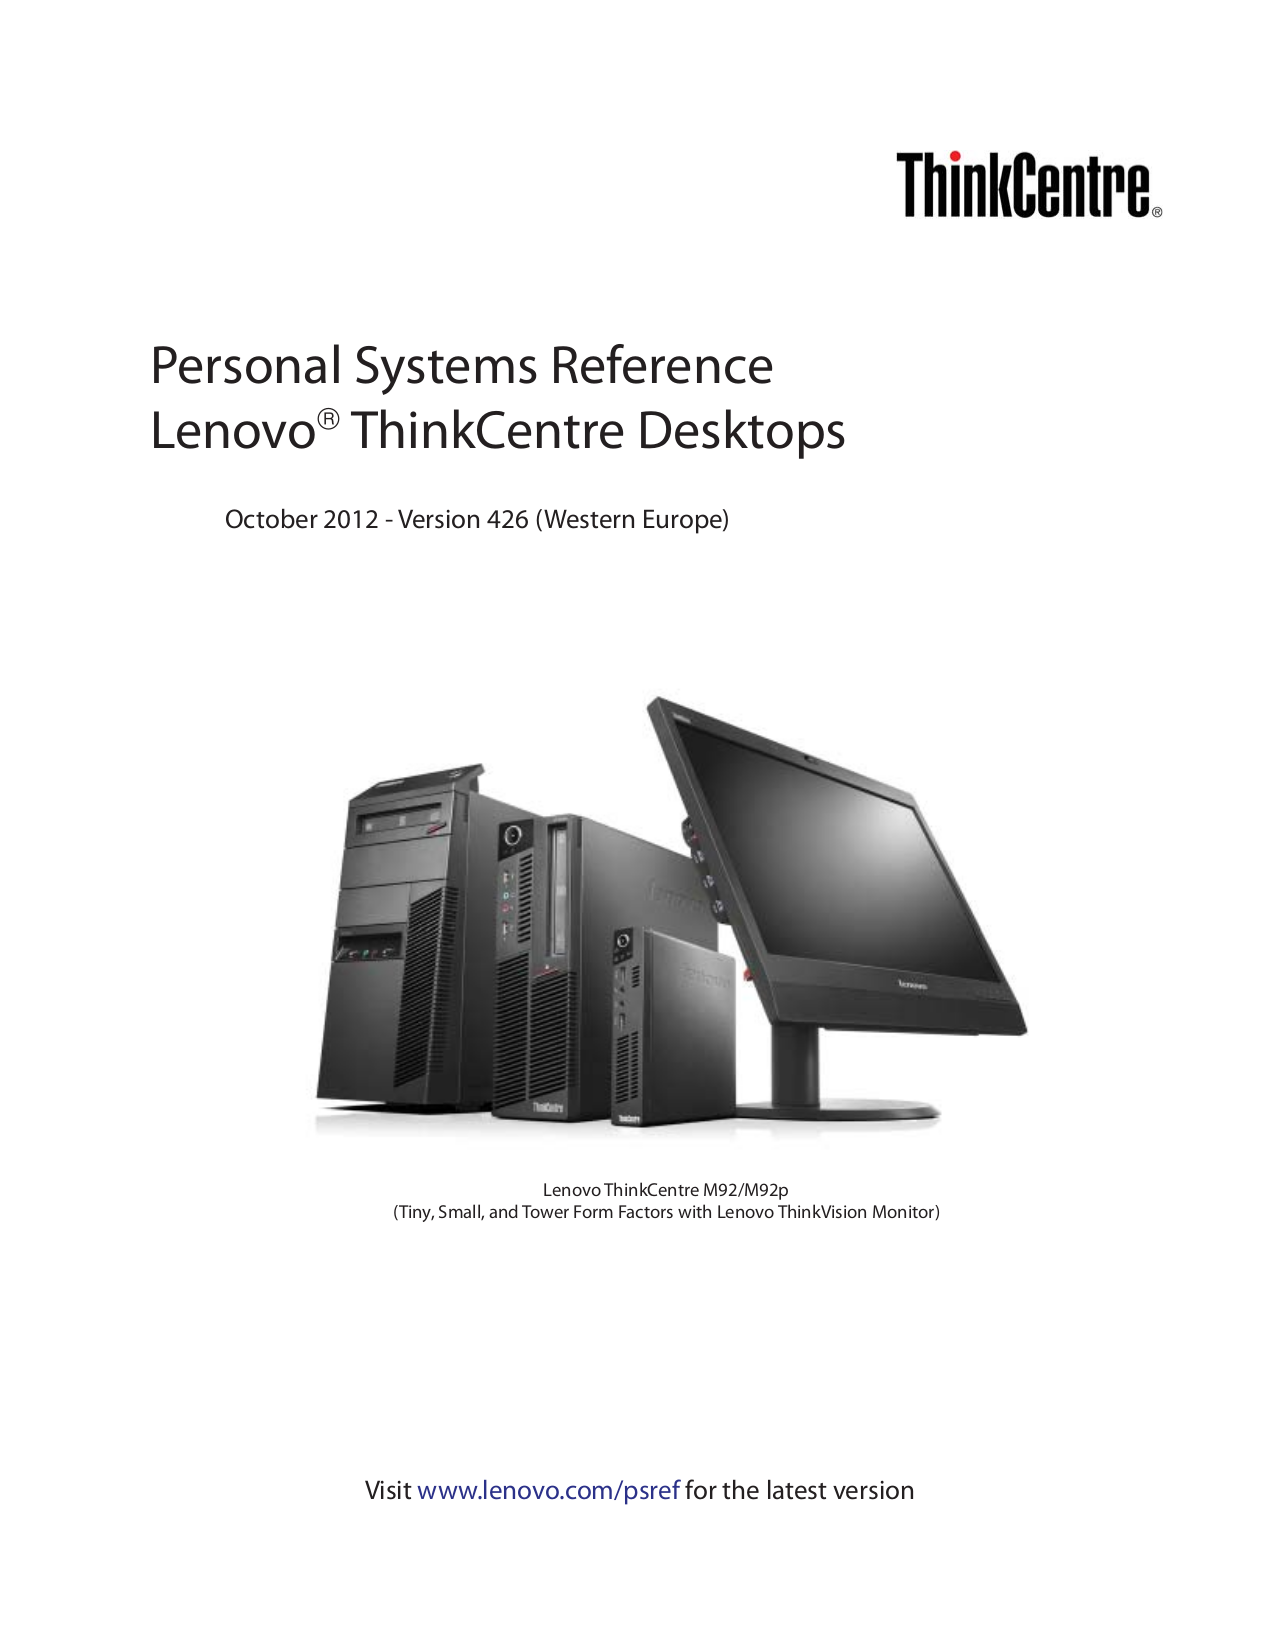 pdf for Lenovo Desktop ThinkCentre M91p 4524 manual